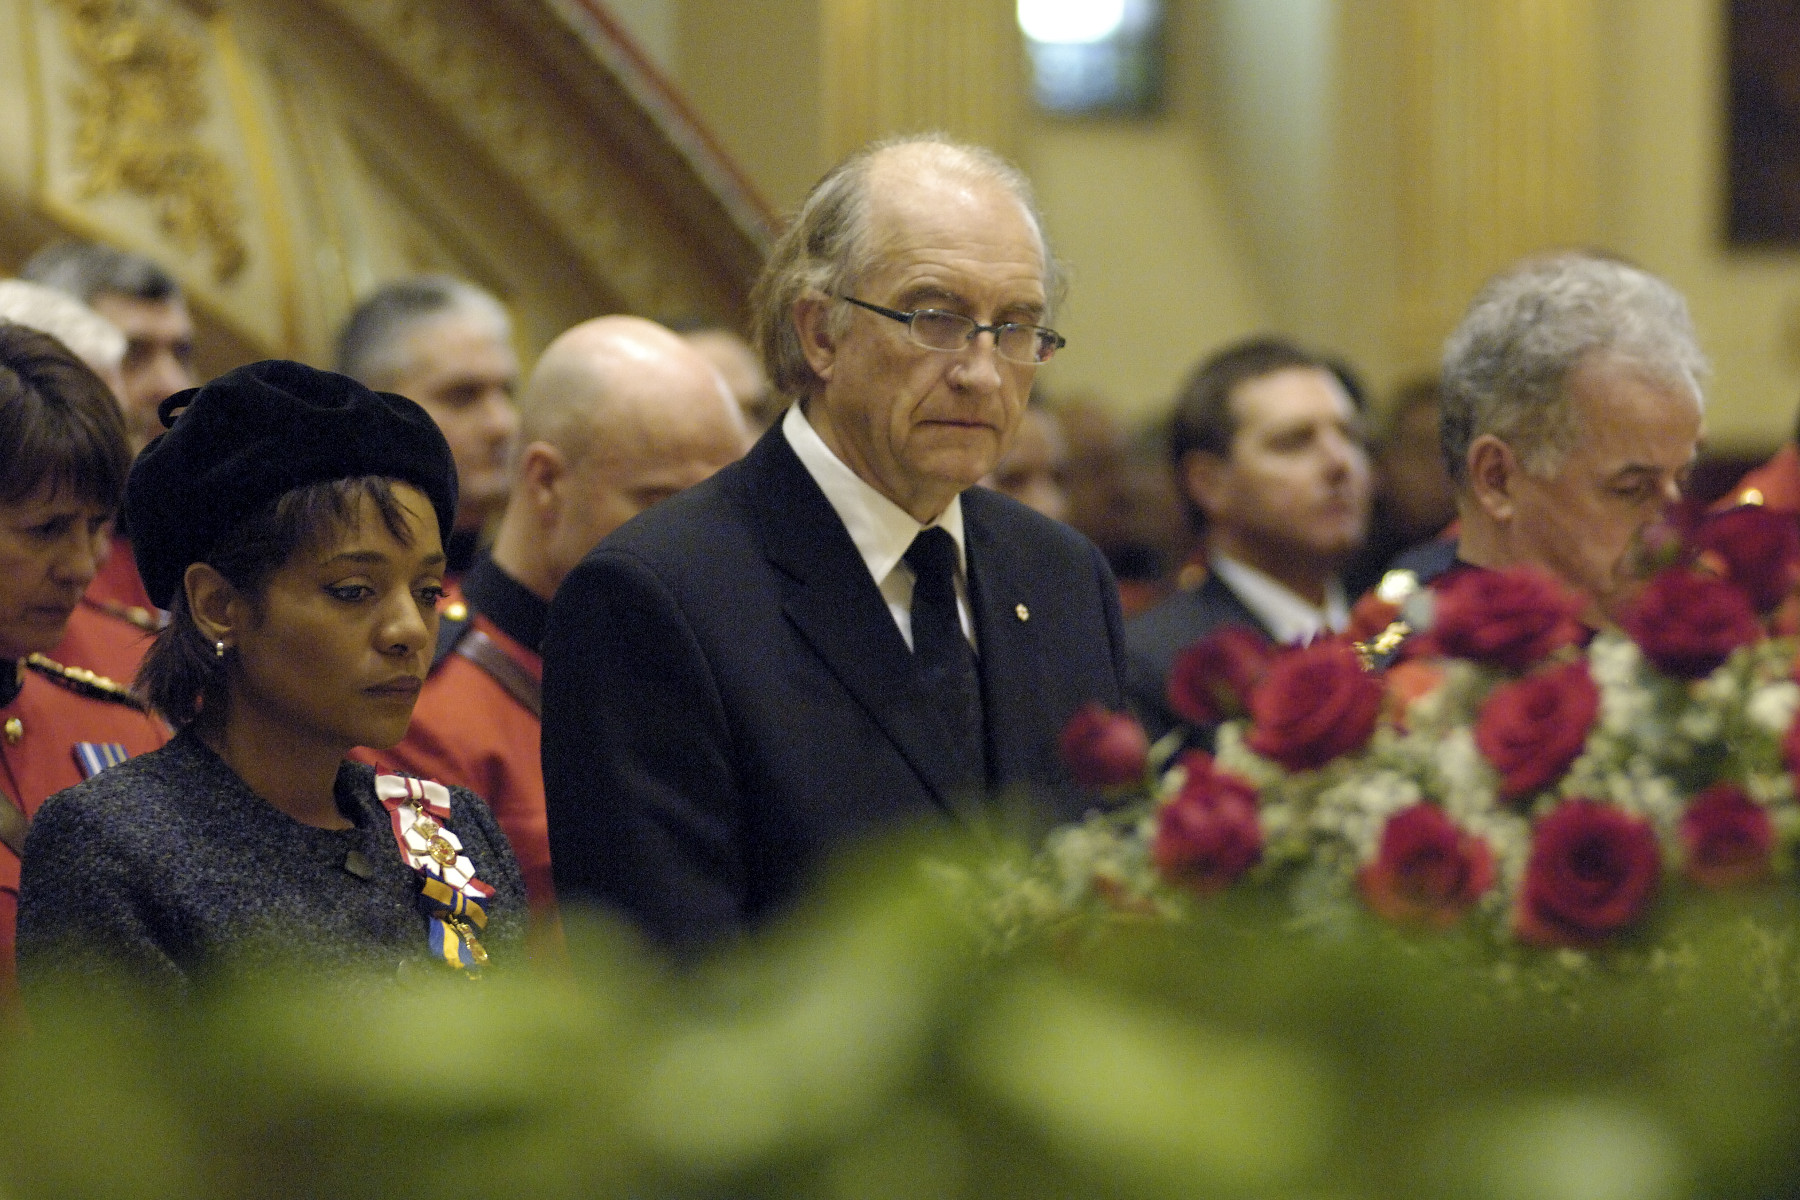 December 2005, Basilique Notre-Dame de Québec, Québec. Her Excellencies the Right Honorable MichaÎlle Jean, Governor General of Canada and Commander in Chief of the Canadian Forces, with His Excellency Jean-Daniel Lafond, attend to the Memorial Service for Mr. Mark Bourque at the Basilique Notre-Dame de Québec. Photo: Rideau Hall.